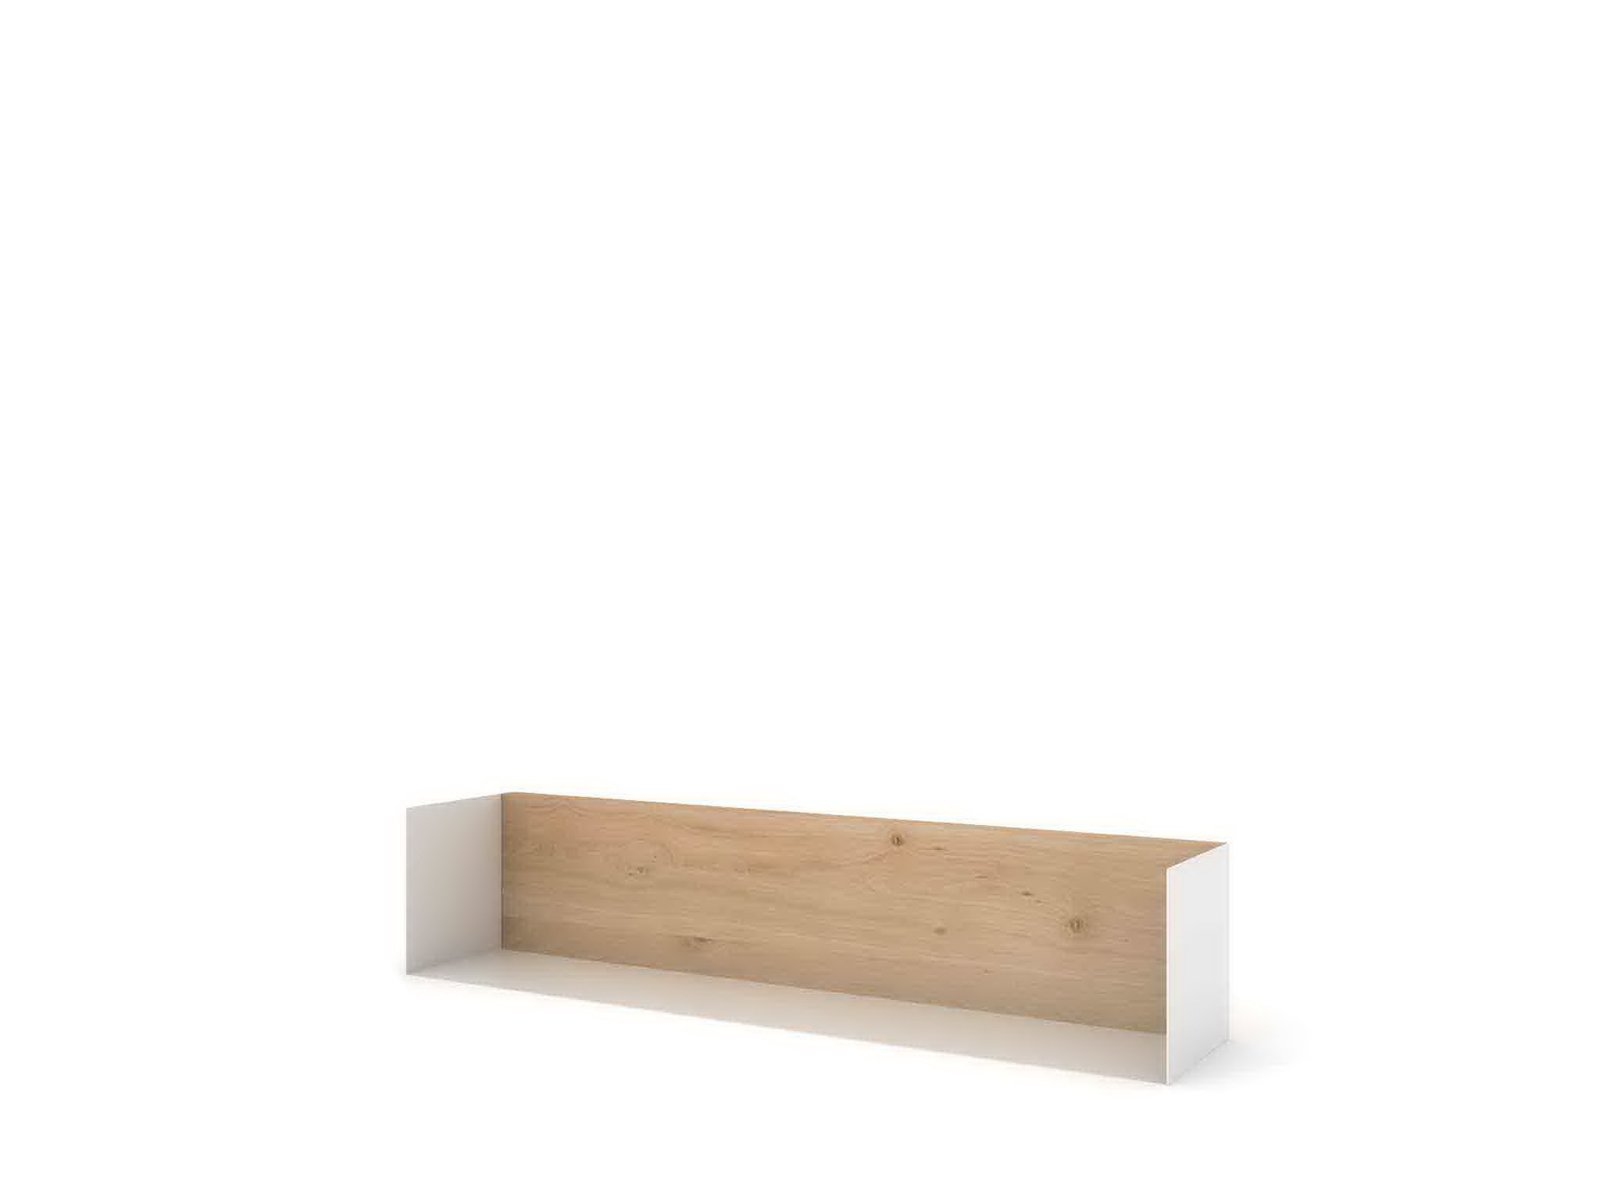 This wall shelf, made of powder-coated steel and oak, is available in different sizes and colors, all of which give an almost invisible, shadow-box effect when mounted.  Photo 5 of 5 in Simple Belgian Furniture with a Sustainable Bent